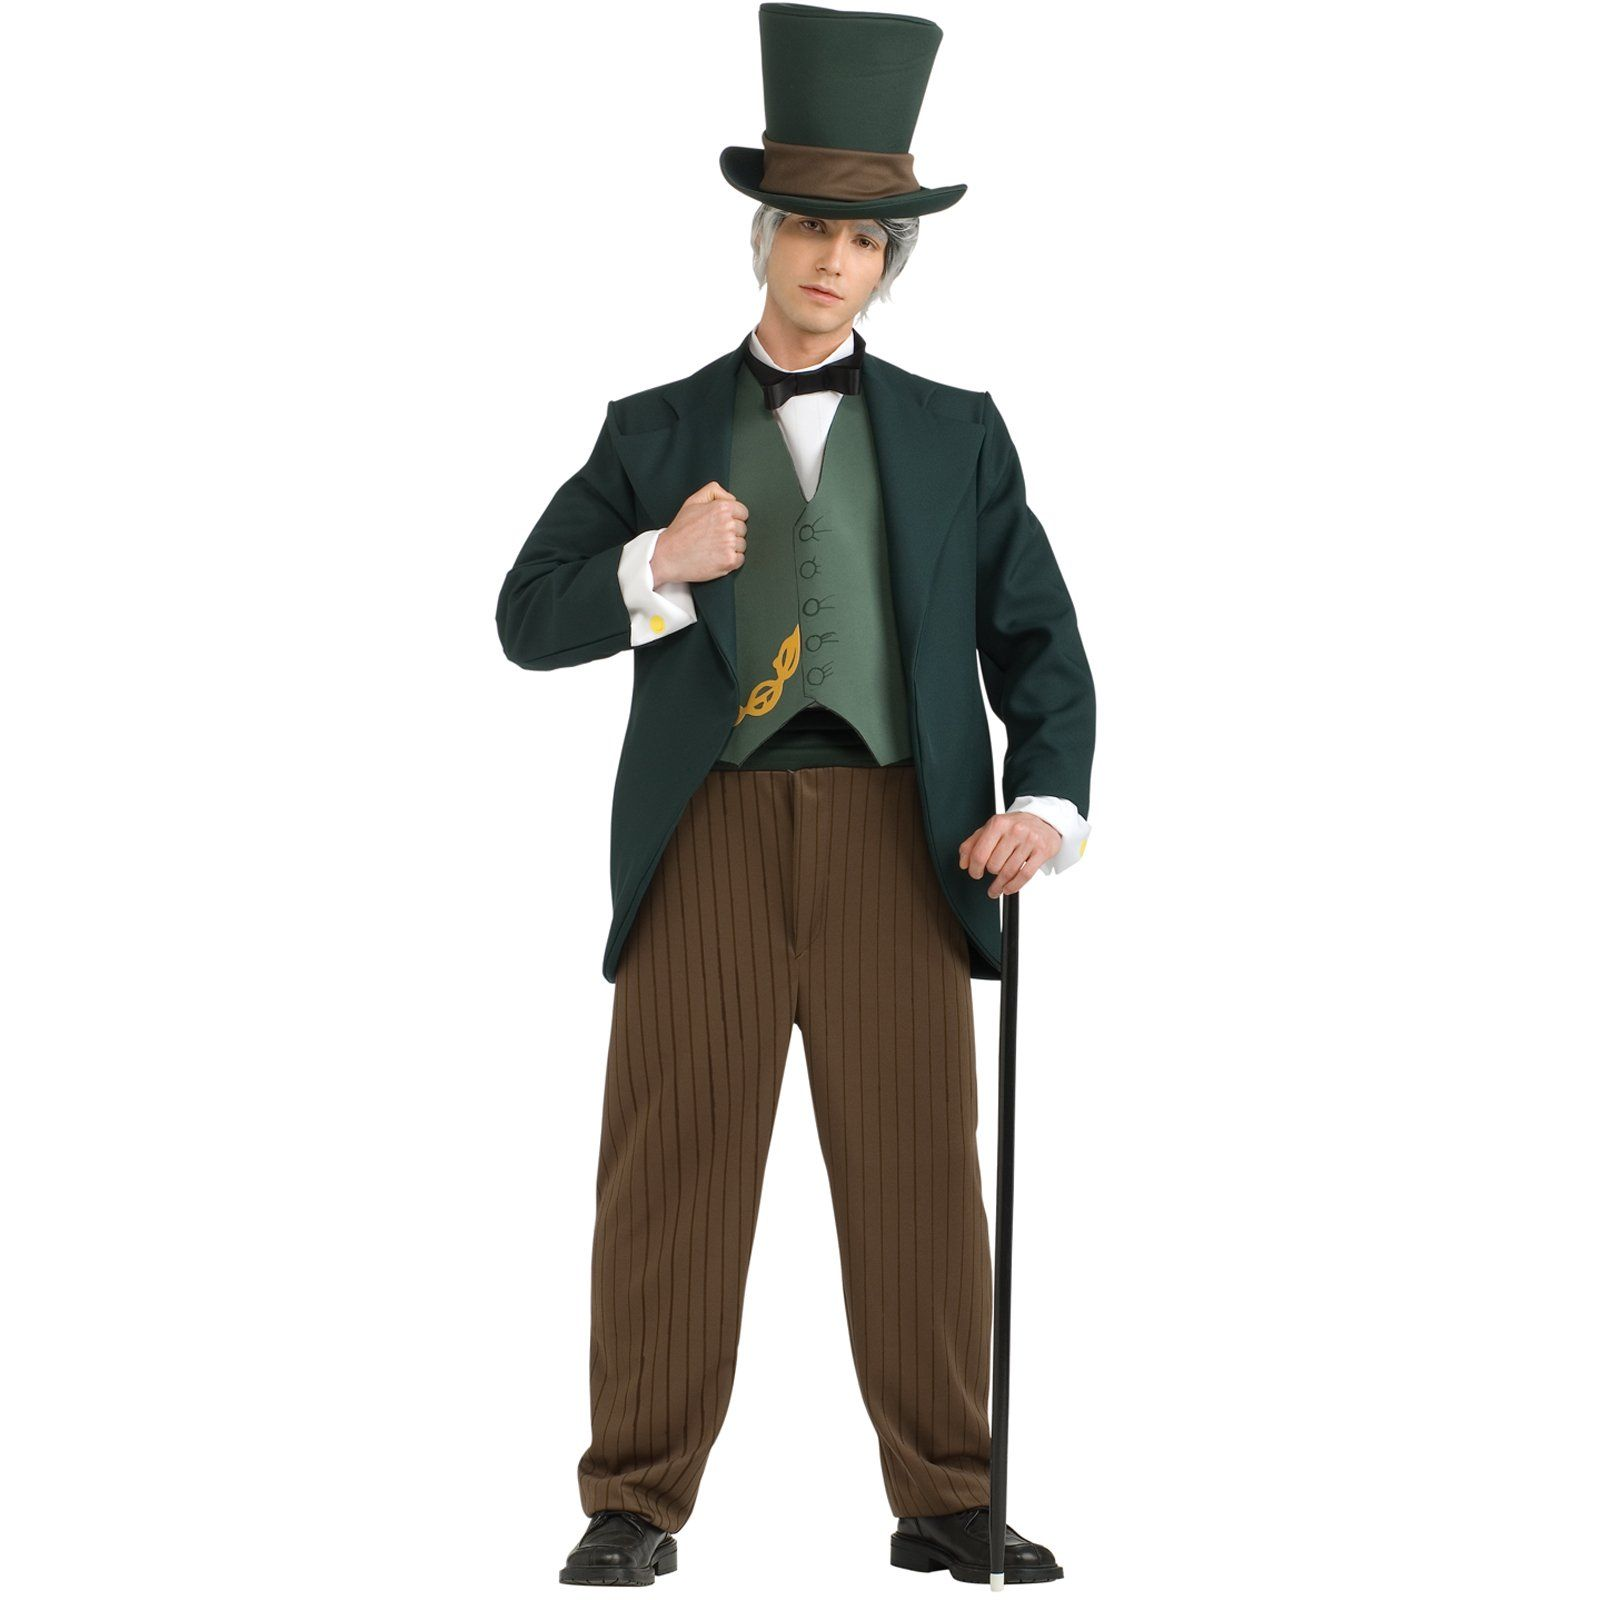 photobooth green top hat and bow for wizard costume | Wicked ...